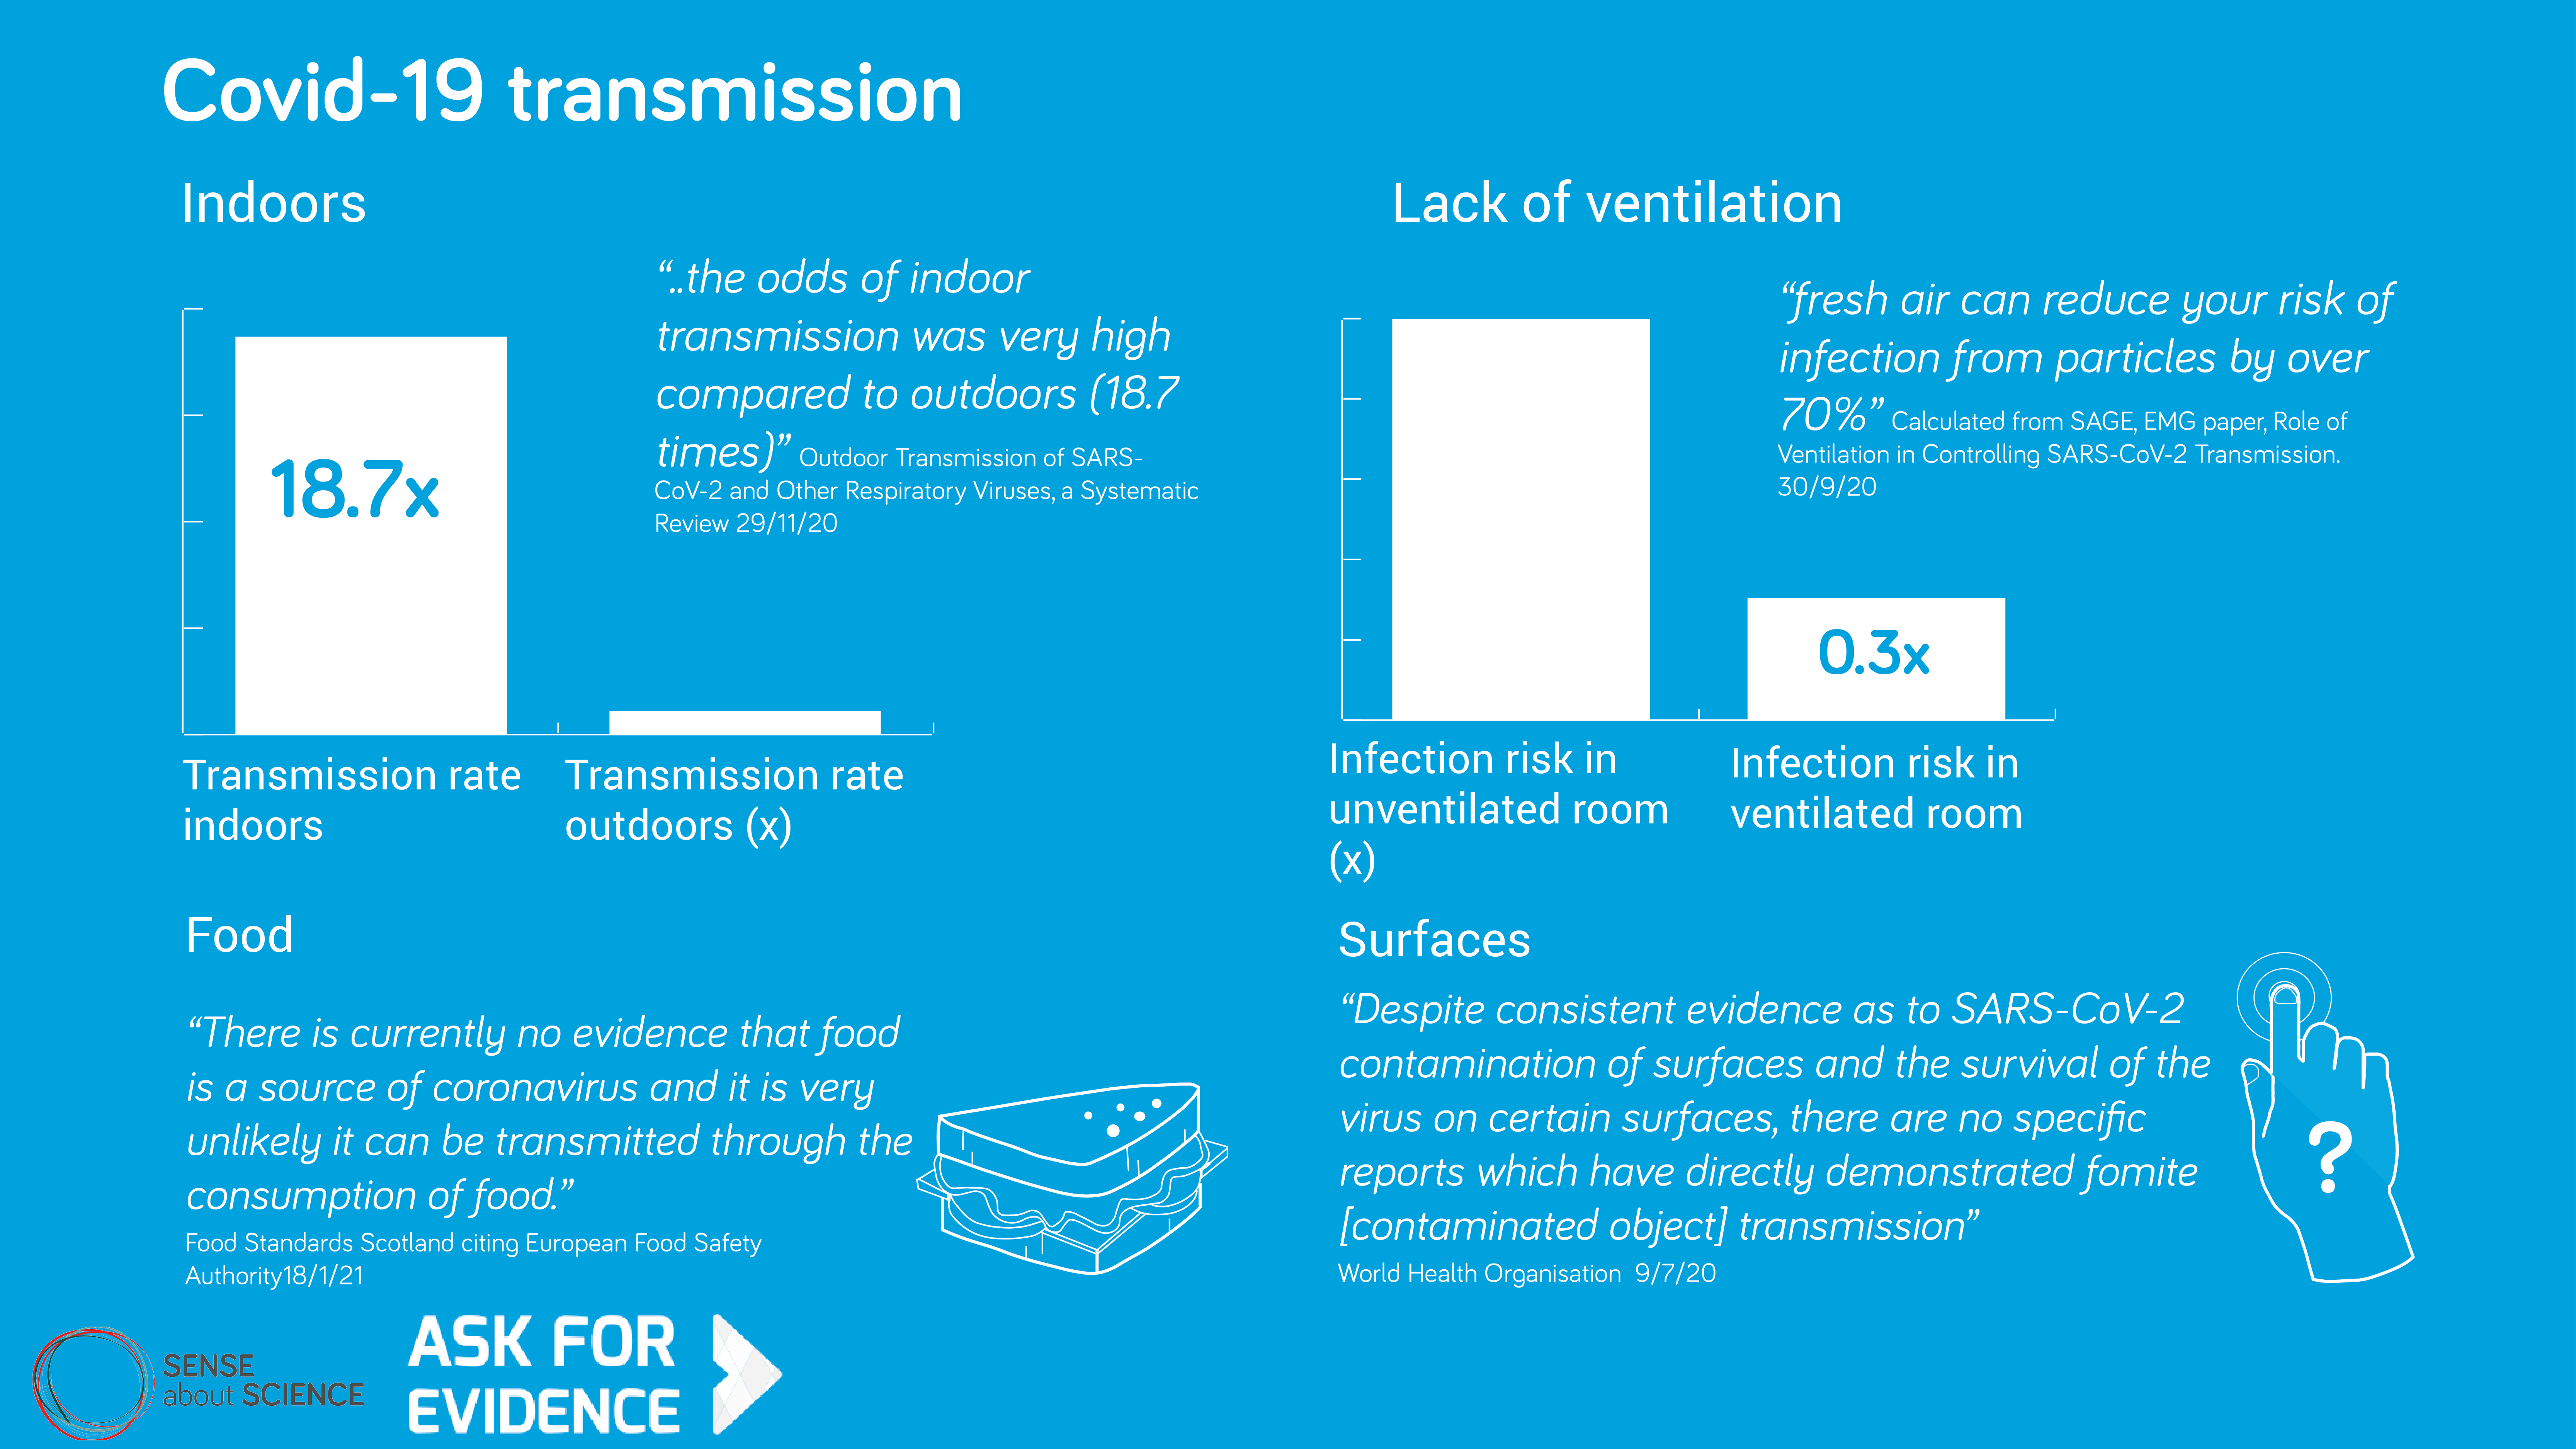 """Graphic from Sense About Science (motto: Ask For Evidence) shows four statements: (1) Transmission rate indoors is 18 times the rate outdoors. (2) Infection risk in a ventilated room is 0.3 times that in an unventilated room. (3) Food: """"There is currently no vidence that food is a source of coronavirus and it is very unlikely it can be transmitted through the consumption of food."""" (4) Surfaces: """"Despite consistent evidence as to SARS-CoV-2 contamination of surfaces and the survival of the virus on certain surfaces, there are no specific reports which have directly demonstrated fomite [contaminated object] transmission."""" Graphic provides sources for these four statements: (1) Outdoor transmission of SARS-CoV-2 and other respiratory viruses, a Systematic Review 29/11/20; (2) Calculated from SAGE, EMG paper, Role of Ventilation in Controlling SARS-CoV-2 Transmission 30/9/20; (3) Food Standards Scotland citing European Food Safety Authority 18/1/21; (4) World Health Organisation 9/7/20."""